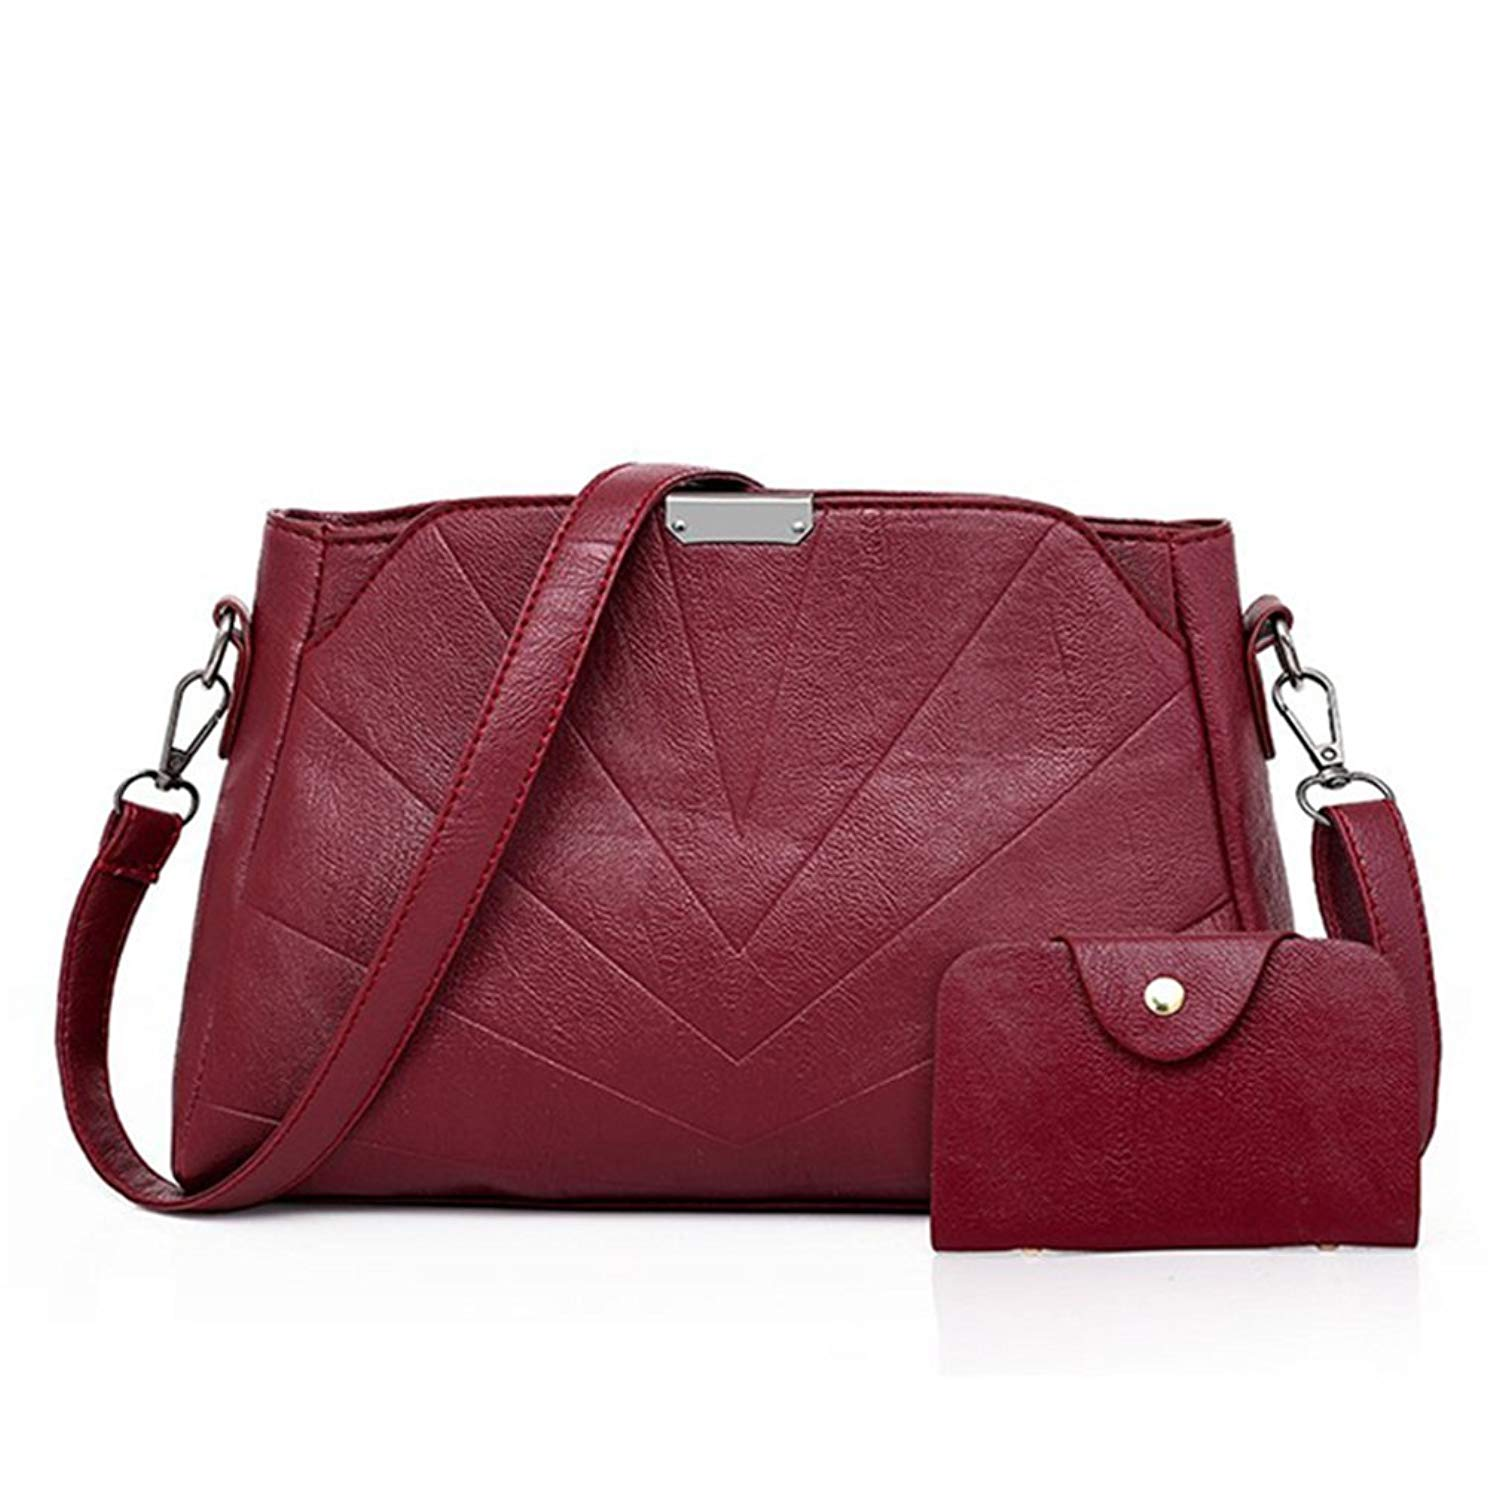 d0653300bf4c Get Quotations · PU Leather Bags Women Red Small Purses Handbags Shoulder Crossbody  Bags Clutch